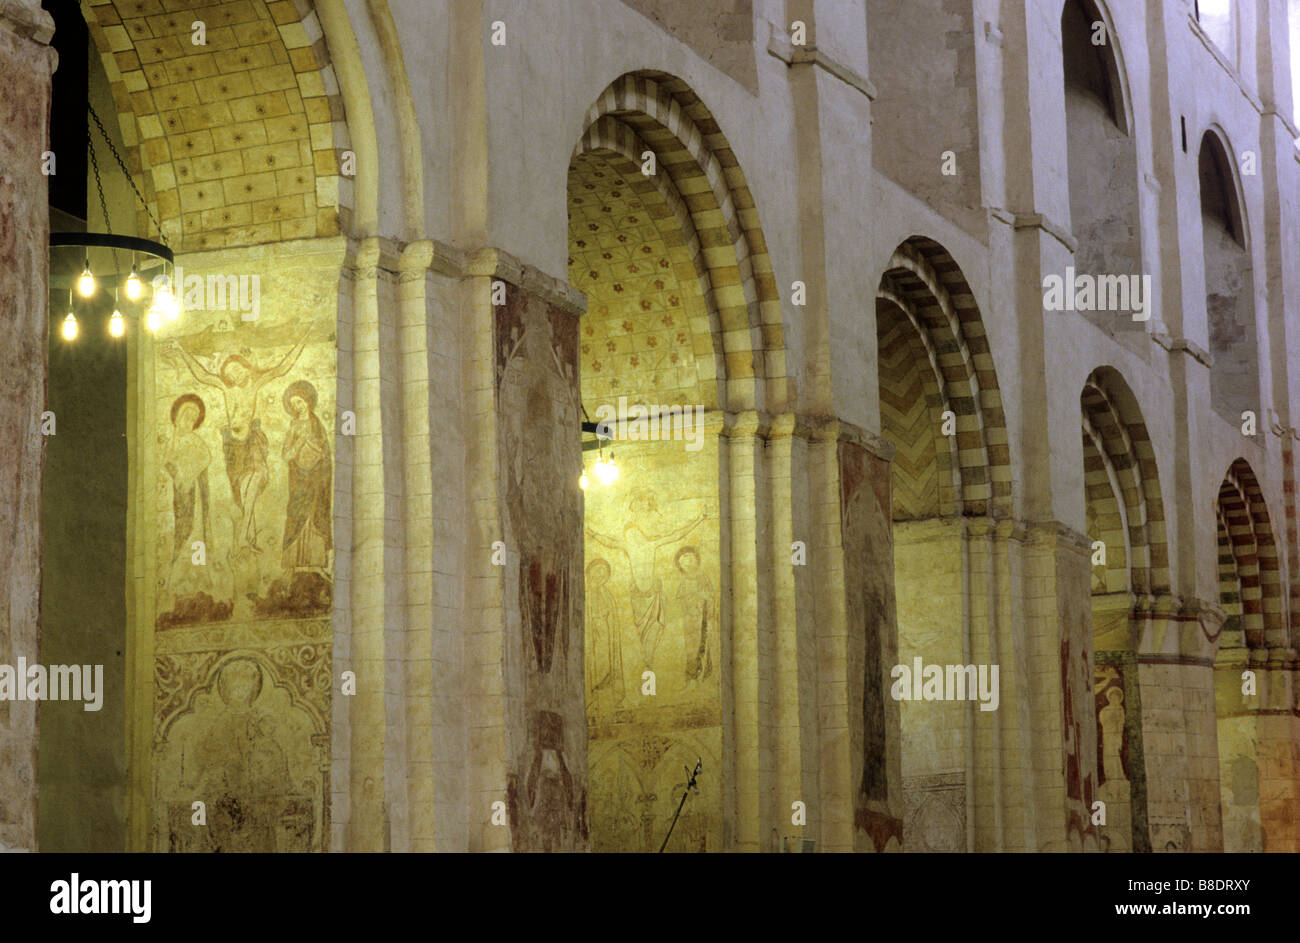 St Albans Cathedral Norman Nave Interior Medieval Wall Painting Crucifixion Romanesque Architecture Arch Arches Arcade Herts